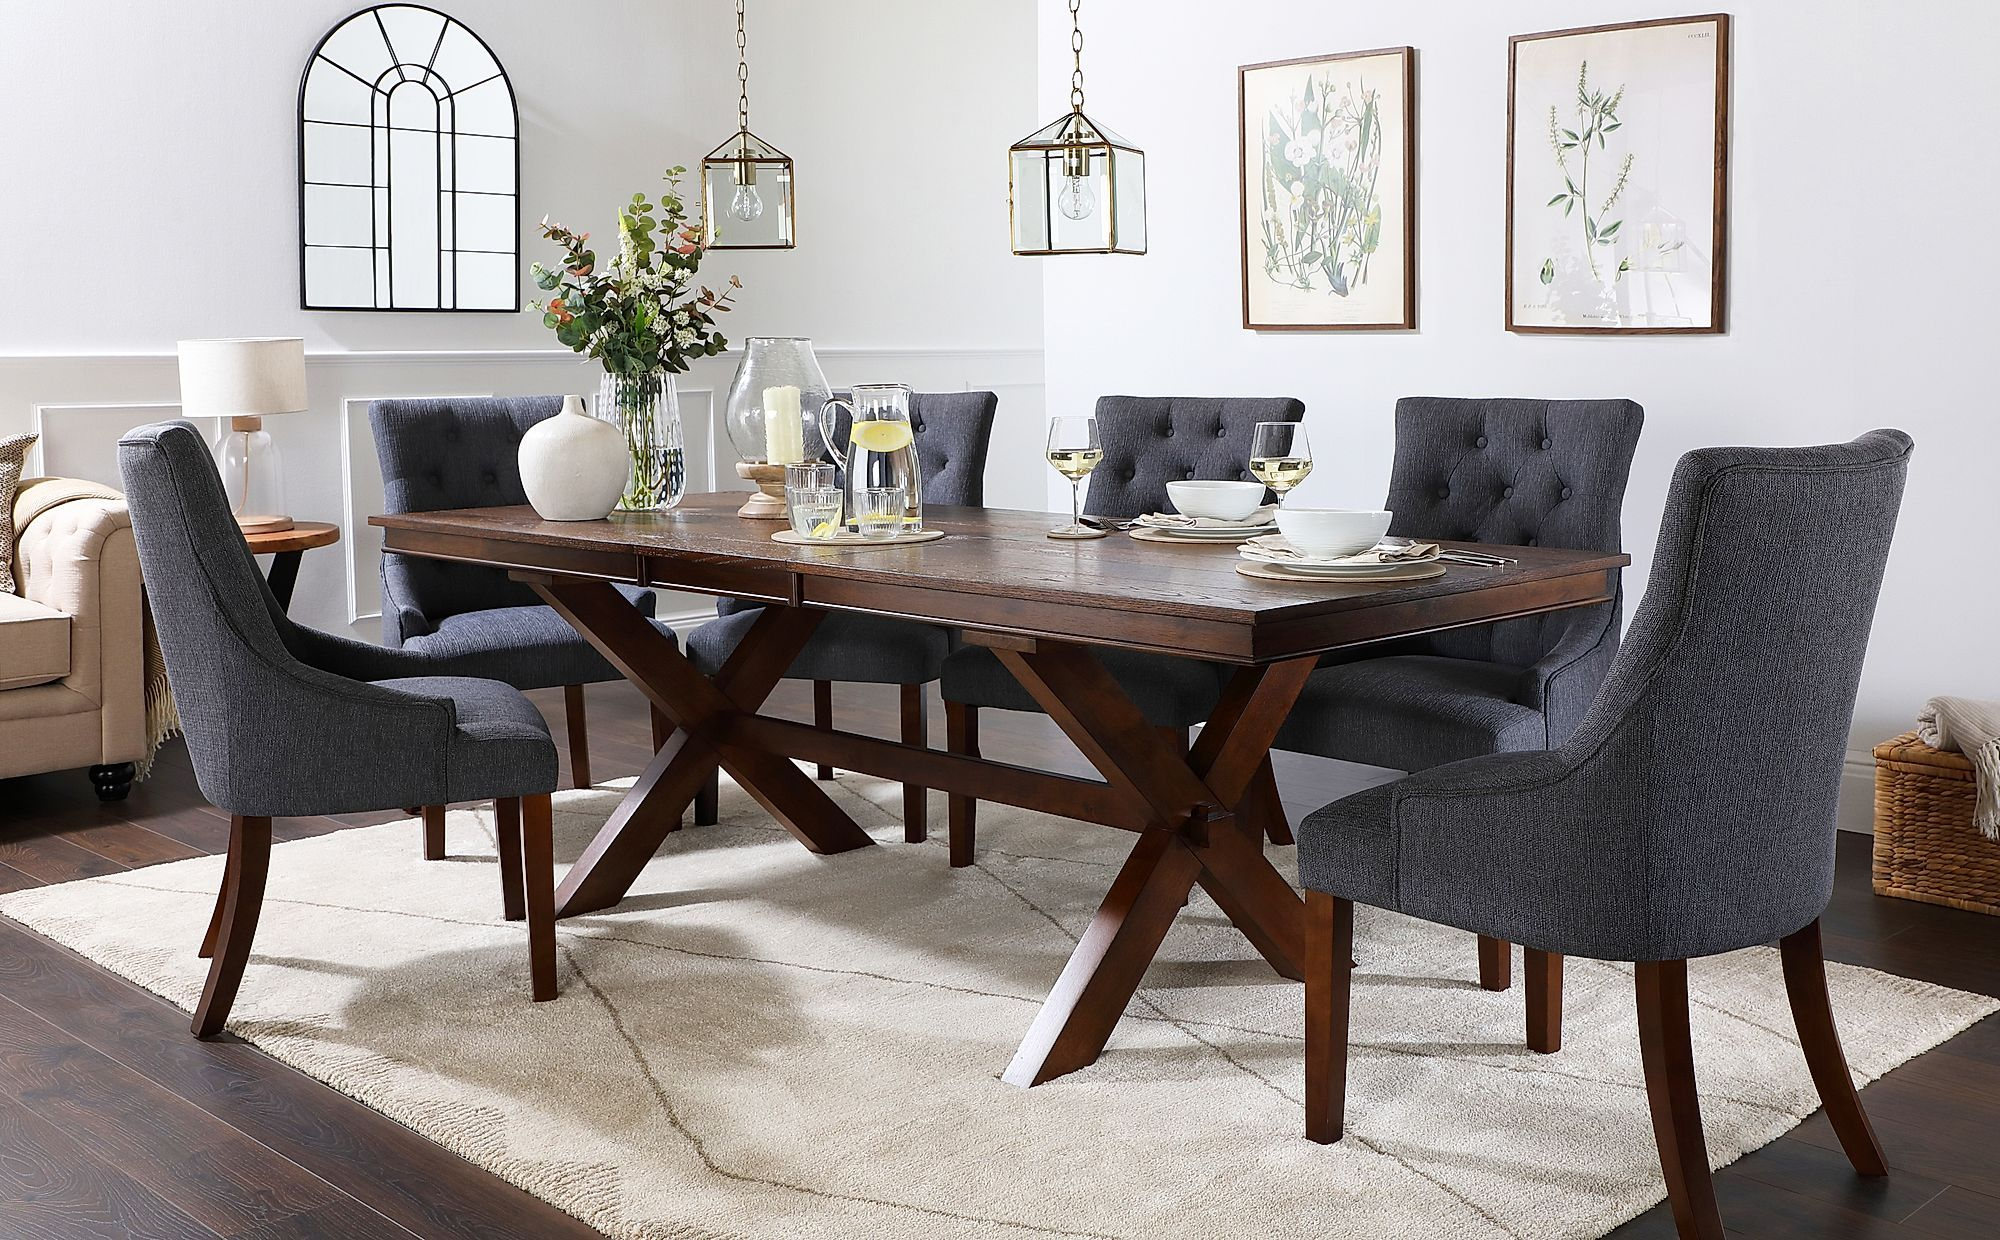 Dark Brown Dining Table With Black Chairs   Novocom.top